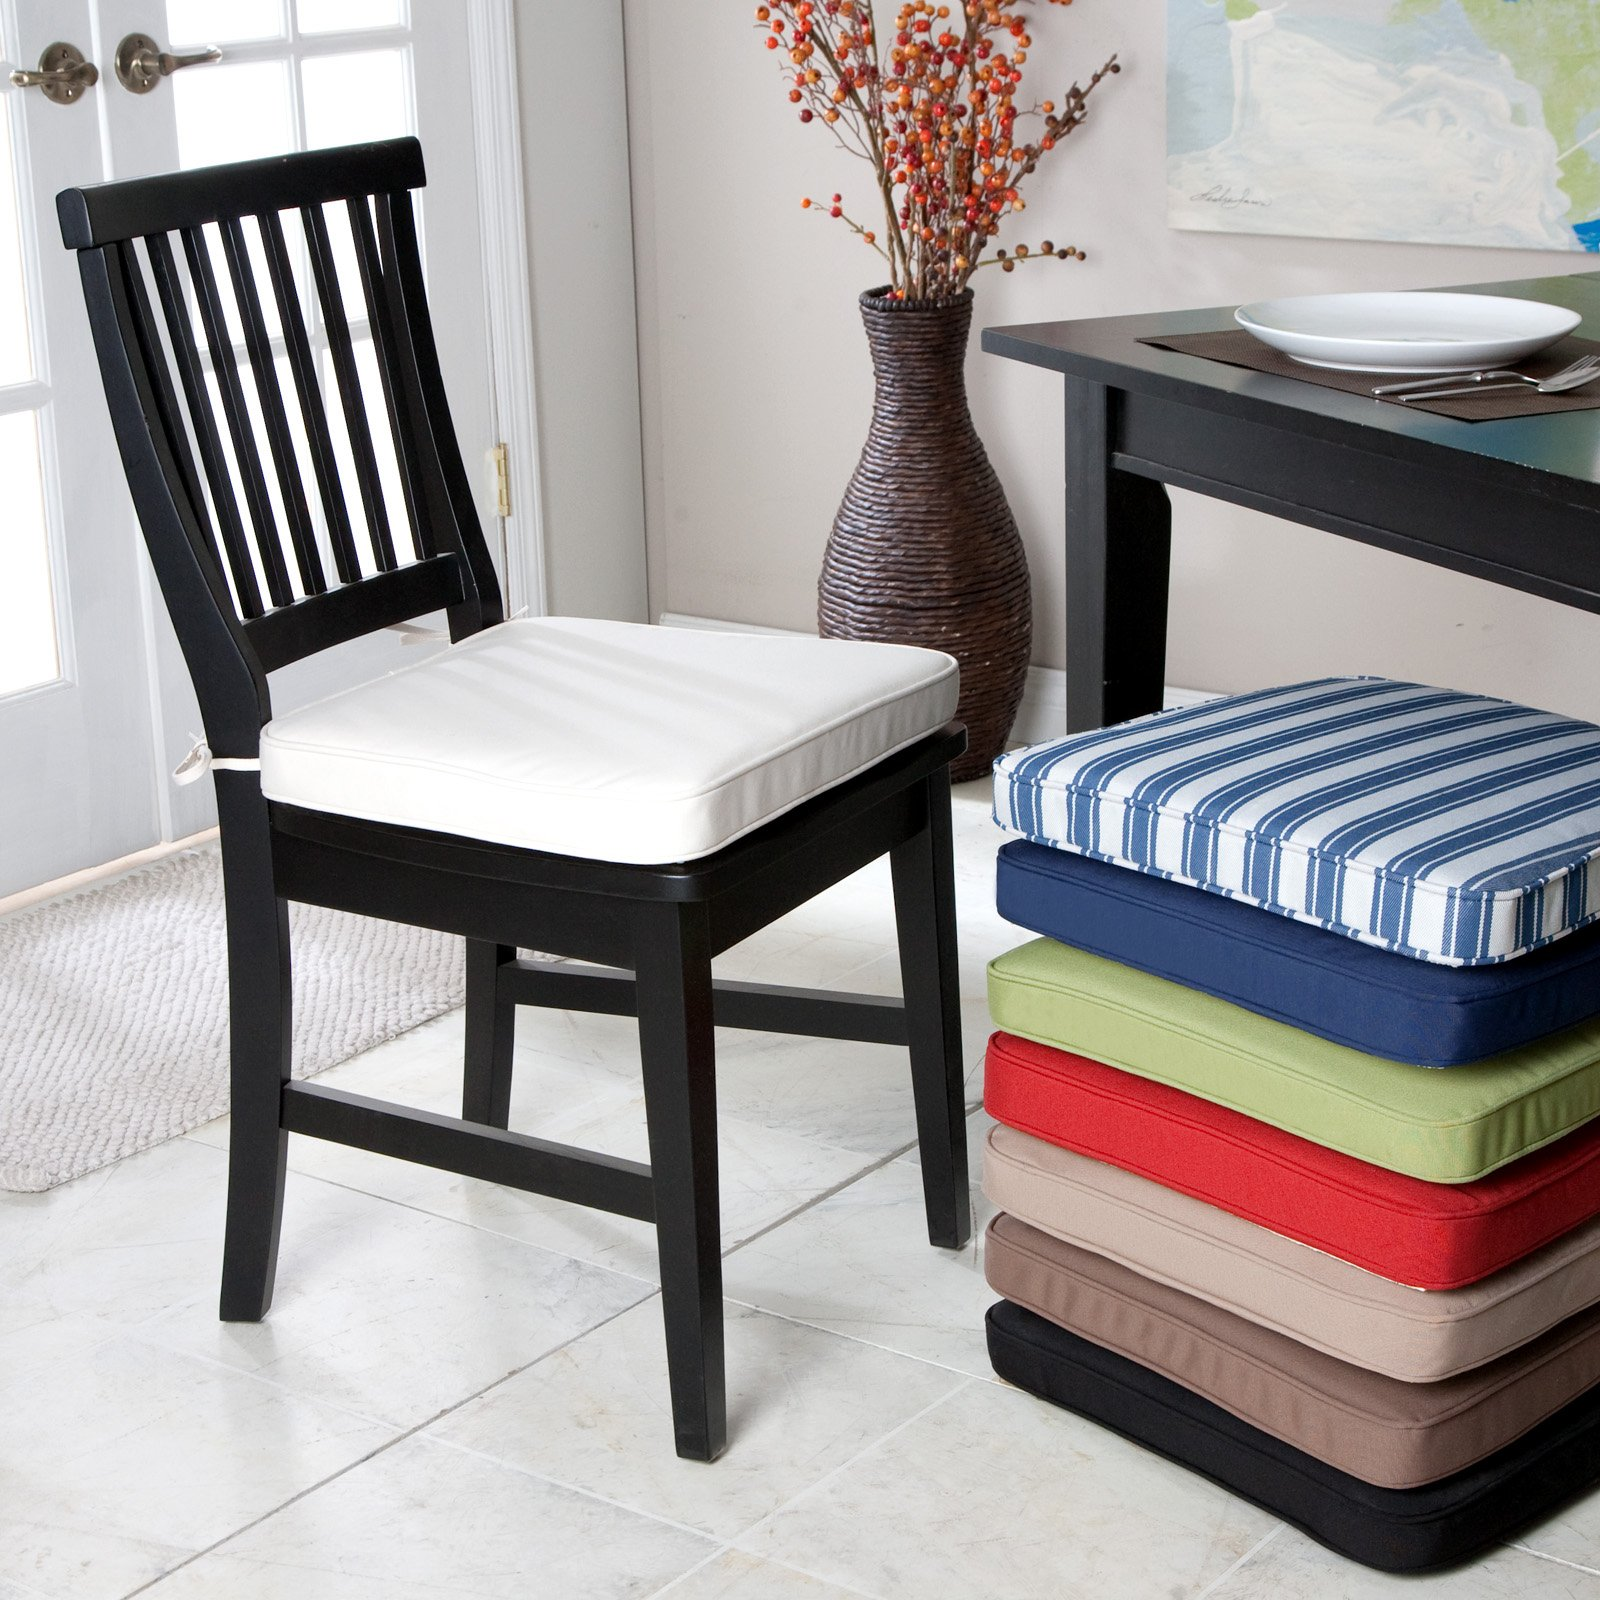 seat cushions for dining room chairs photo - 1